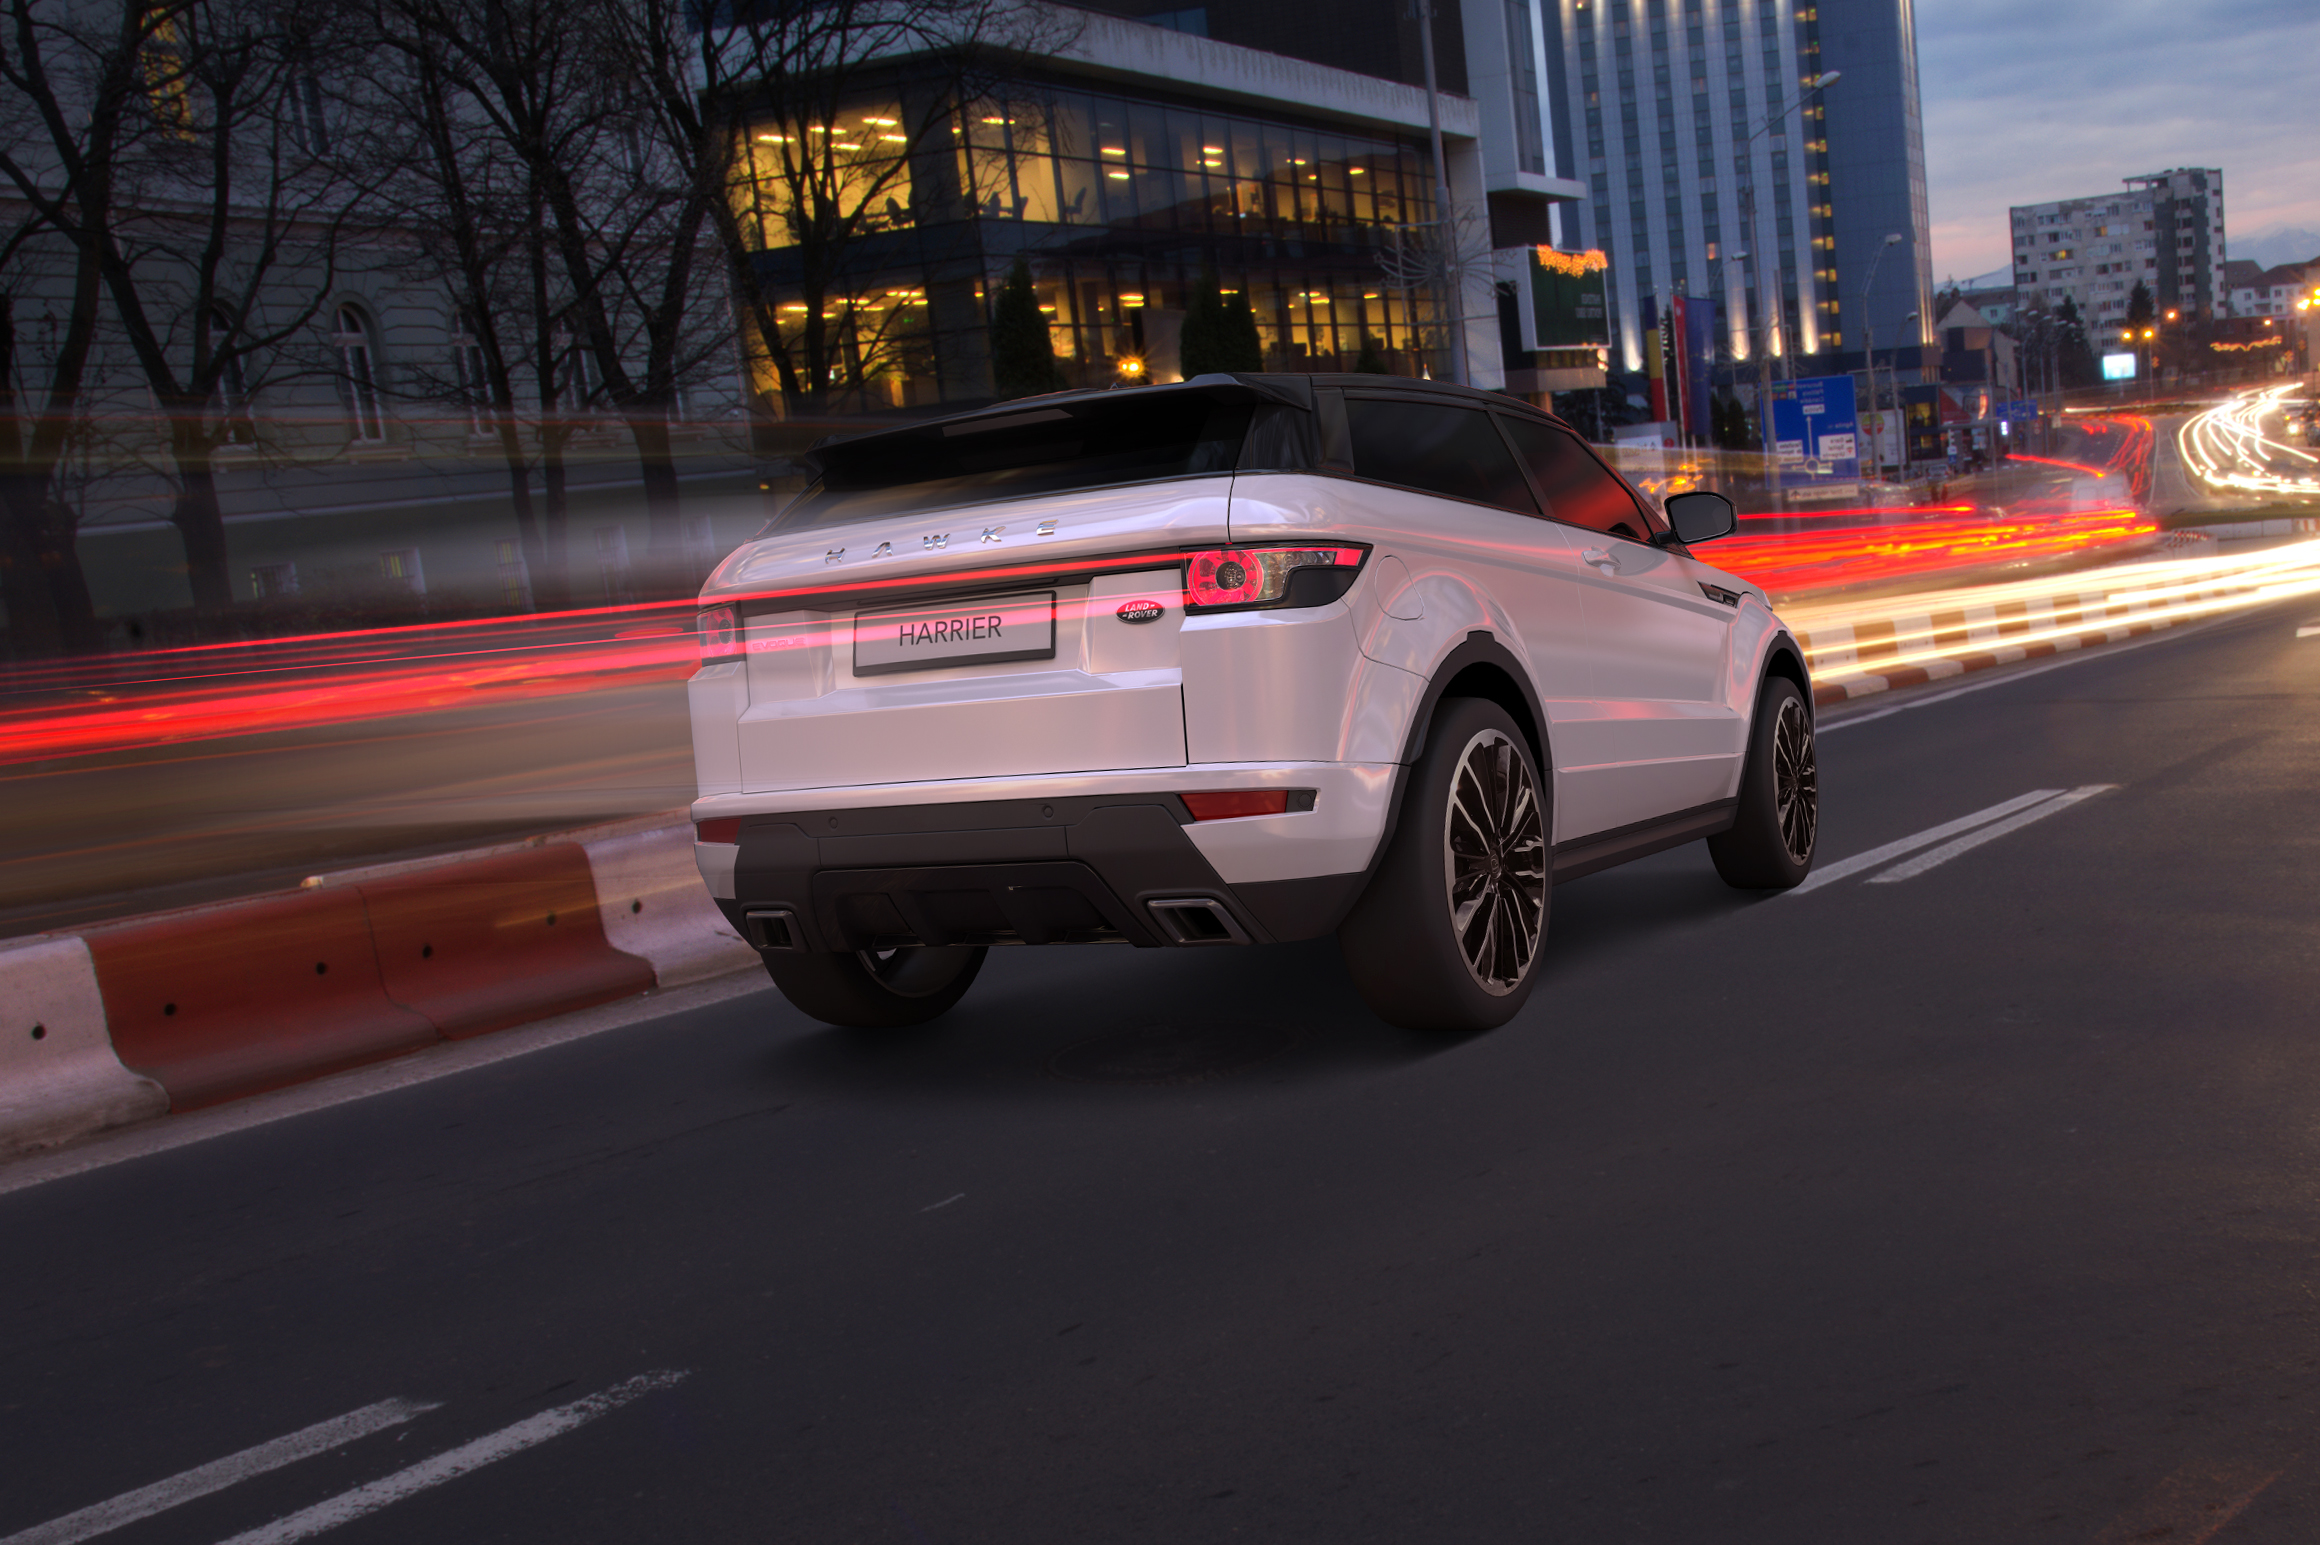 White Range Rover Evoque on HAWKE Harrier wheels in Black Polished colour finish